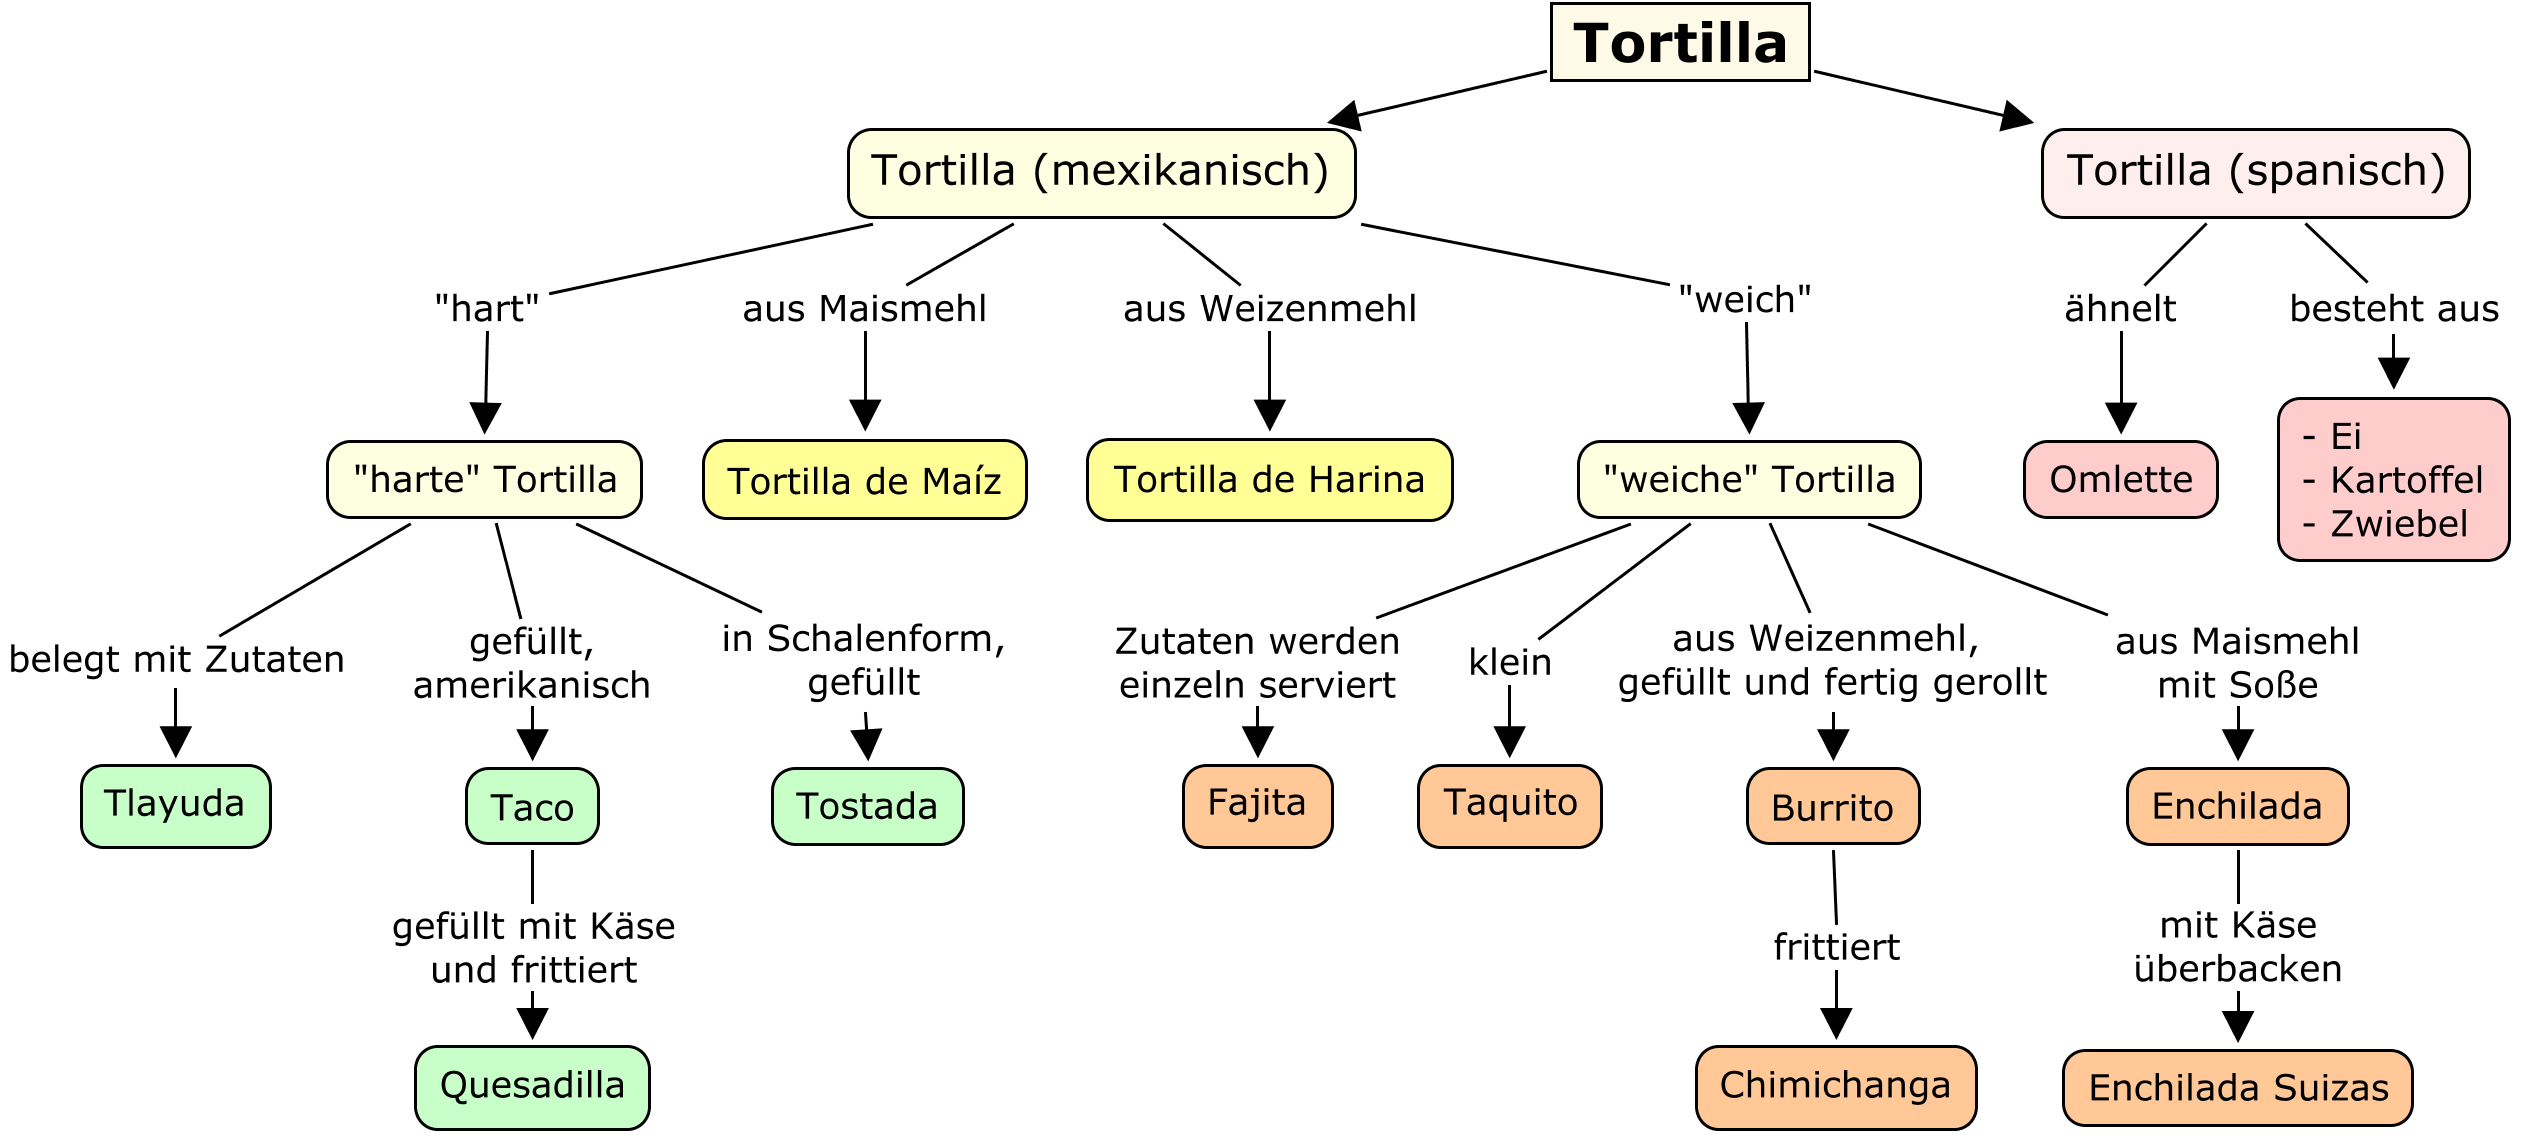 https://upload.wikimedia.org/wikipedia/commons/2/2c/Tortilla_Concept_Map.png